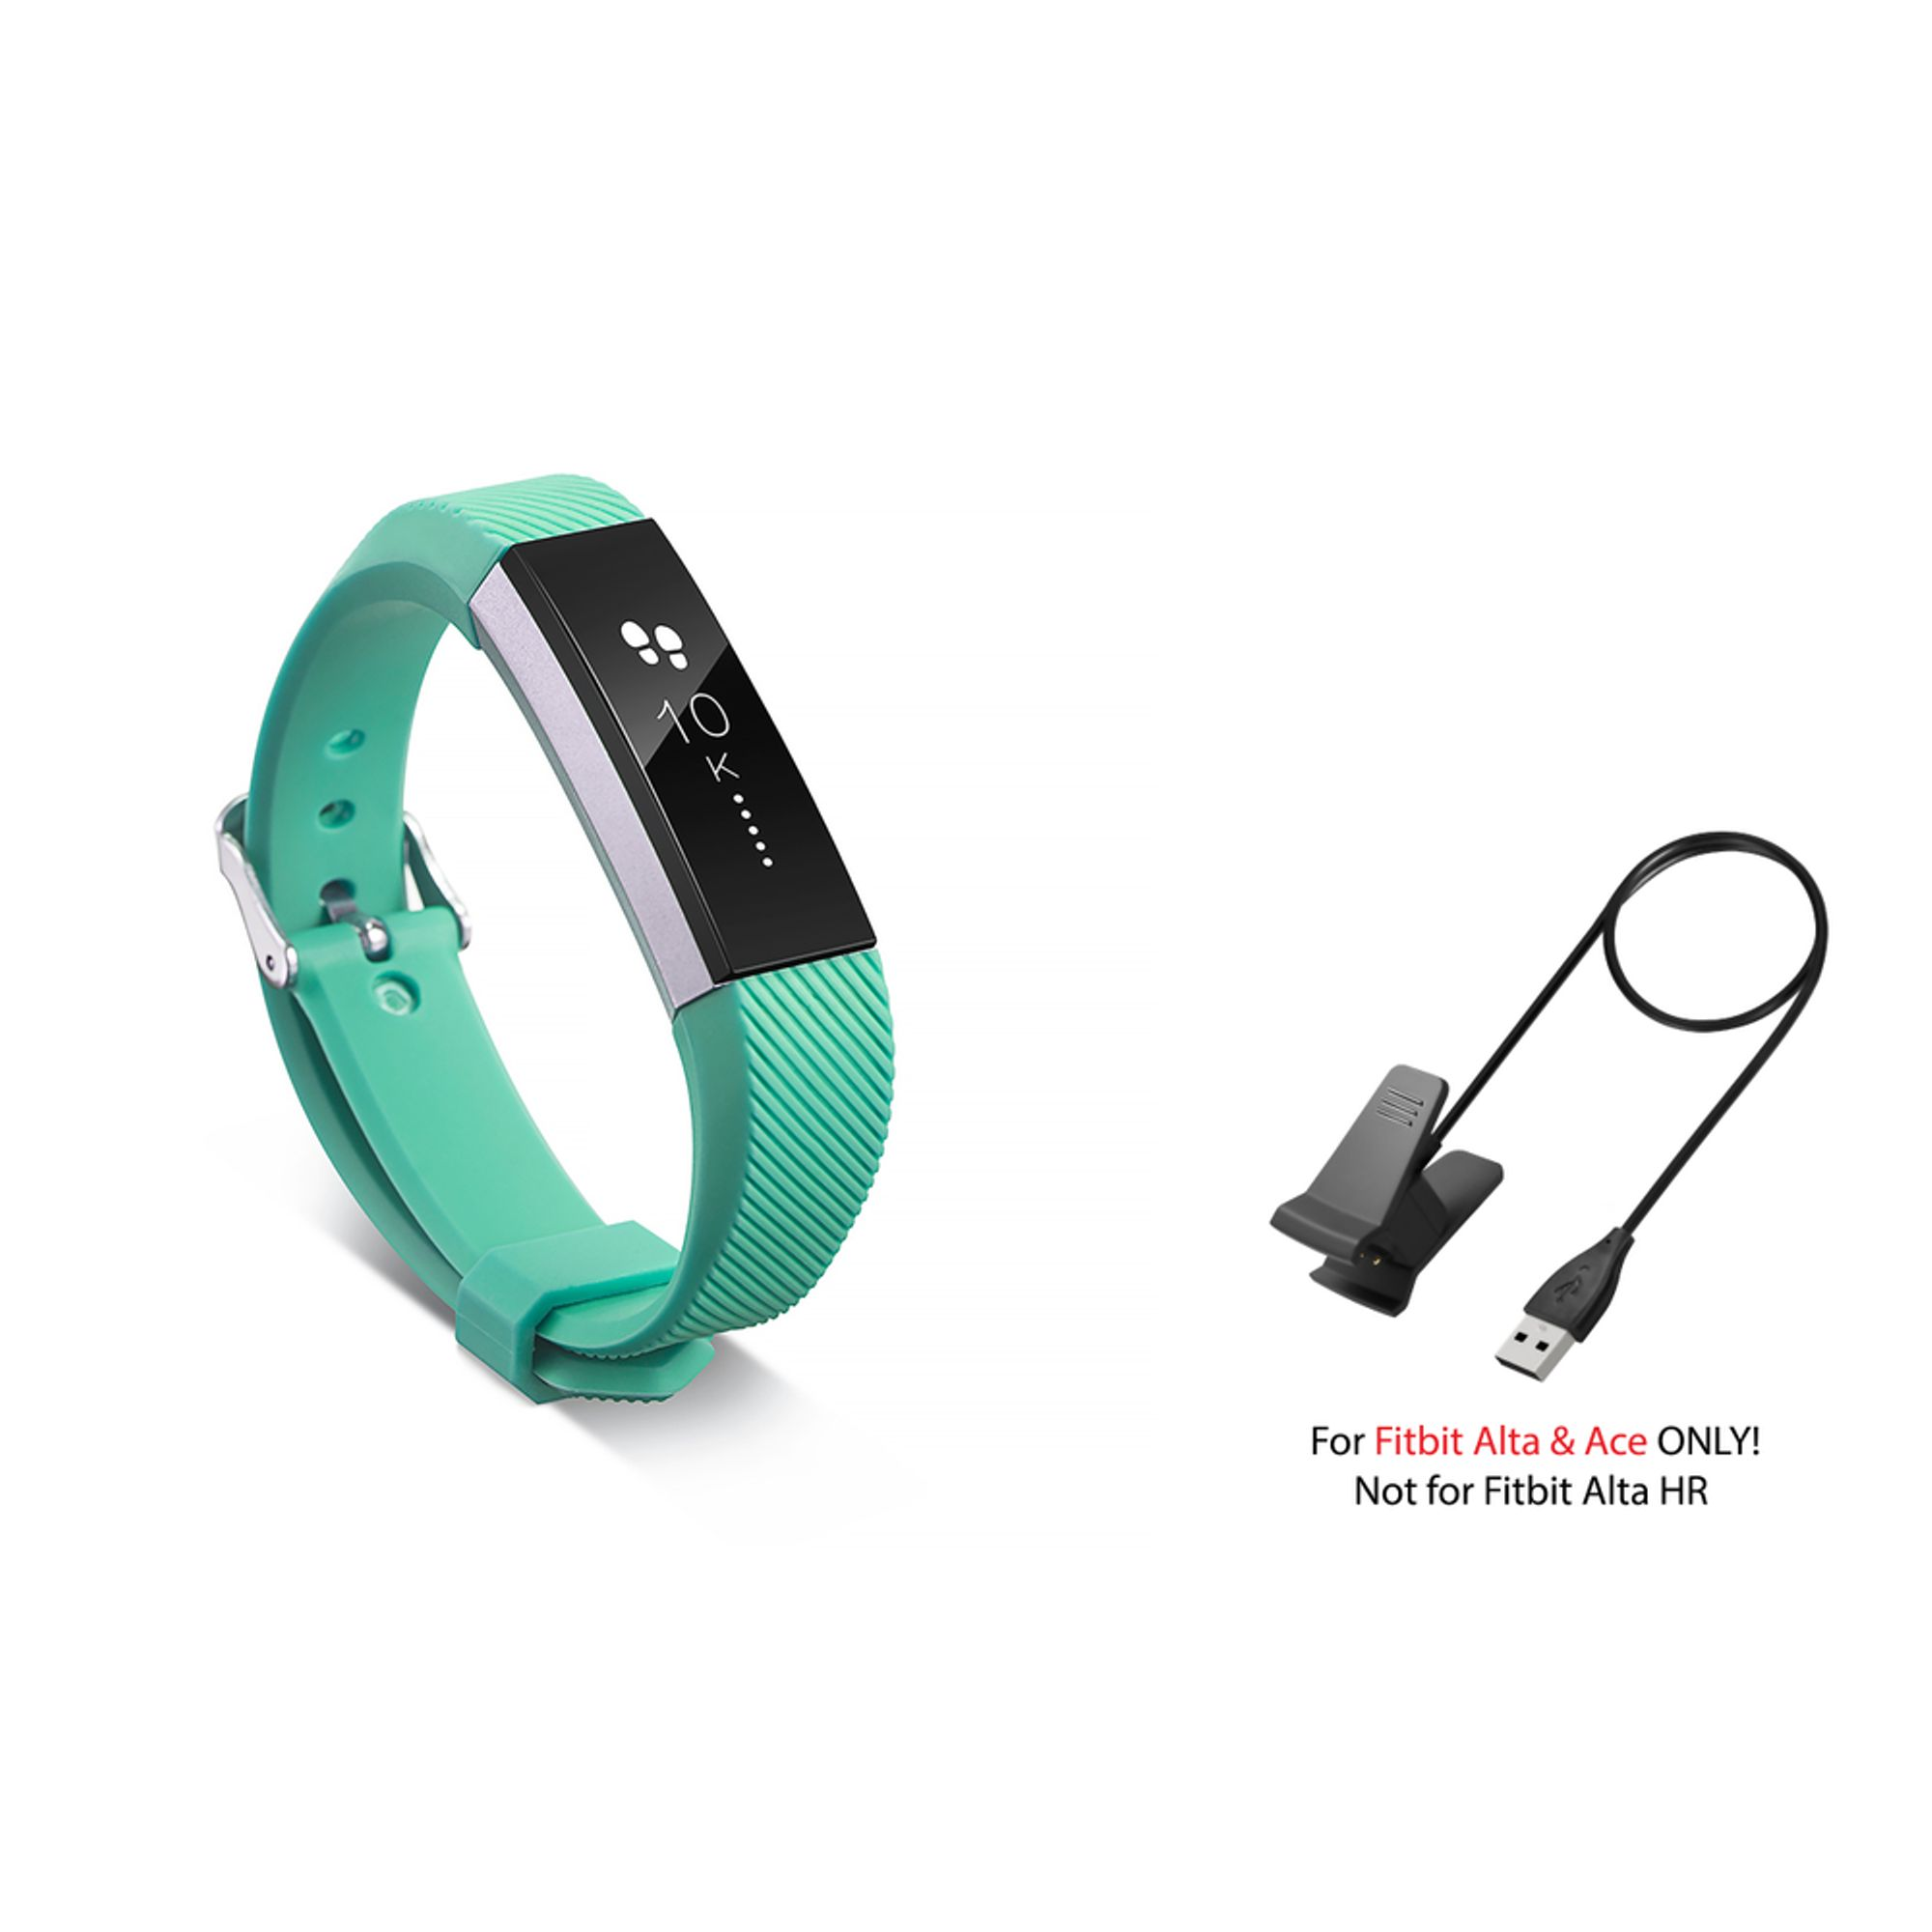 Fitbit Alta / Ace Band by Zodaca Replacement Band Wrist Band and Fitbit Alta / Ace Charger Cable Charging Cord Accessory Bundle for Fitbit Alta / Ace - Mint Green